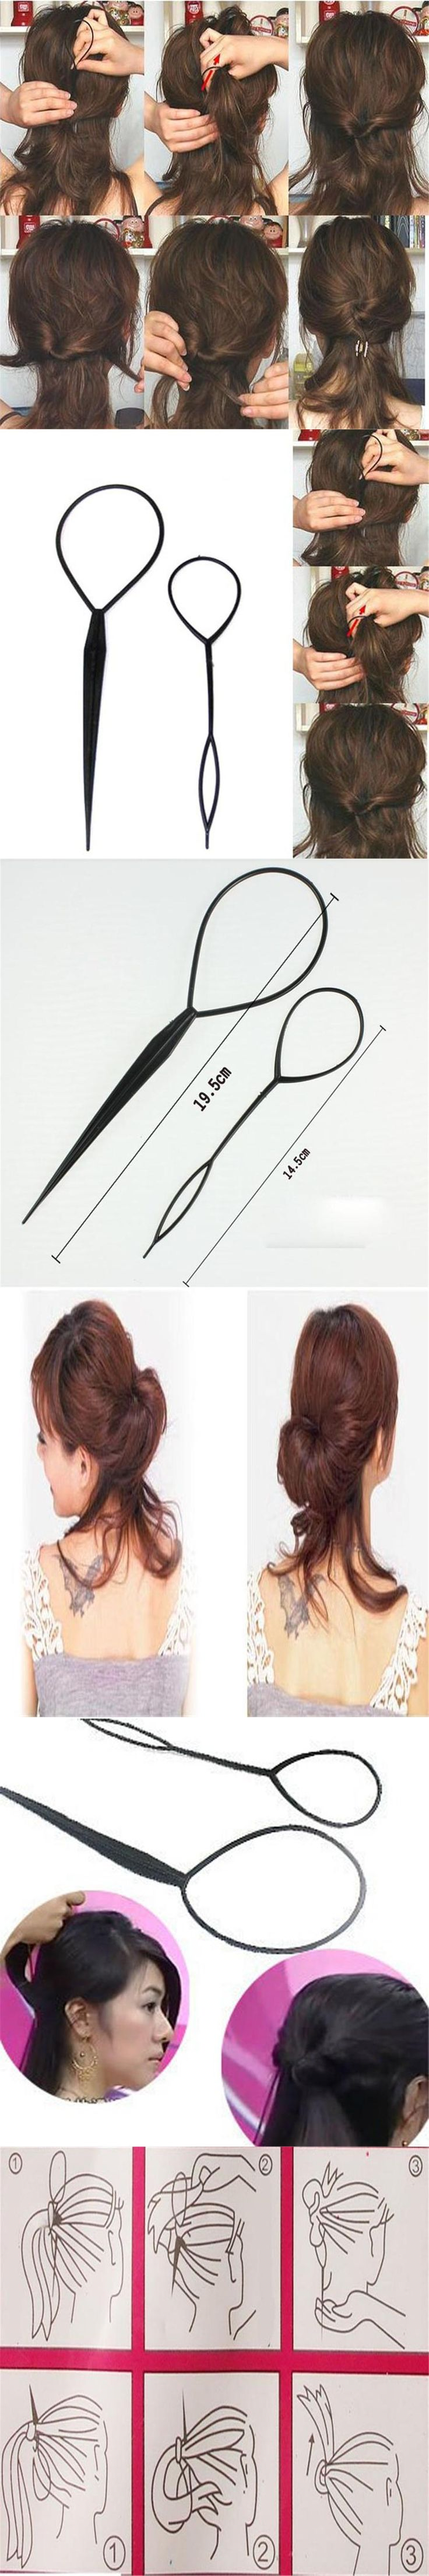 Set of 2 Pcs Fashion Topsy Tail Hair Braid Pony Tail Maker Styling Tool Salon